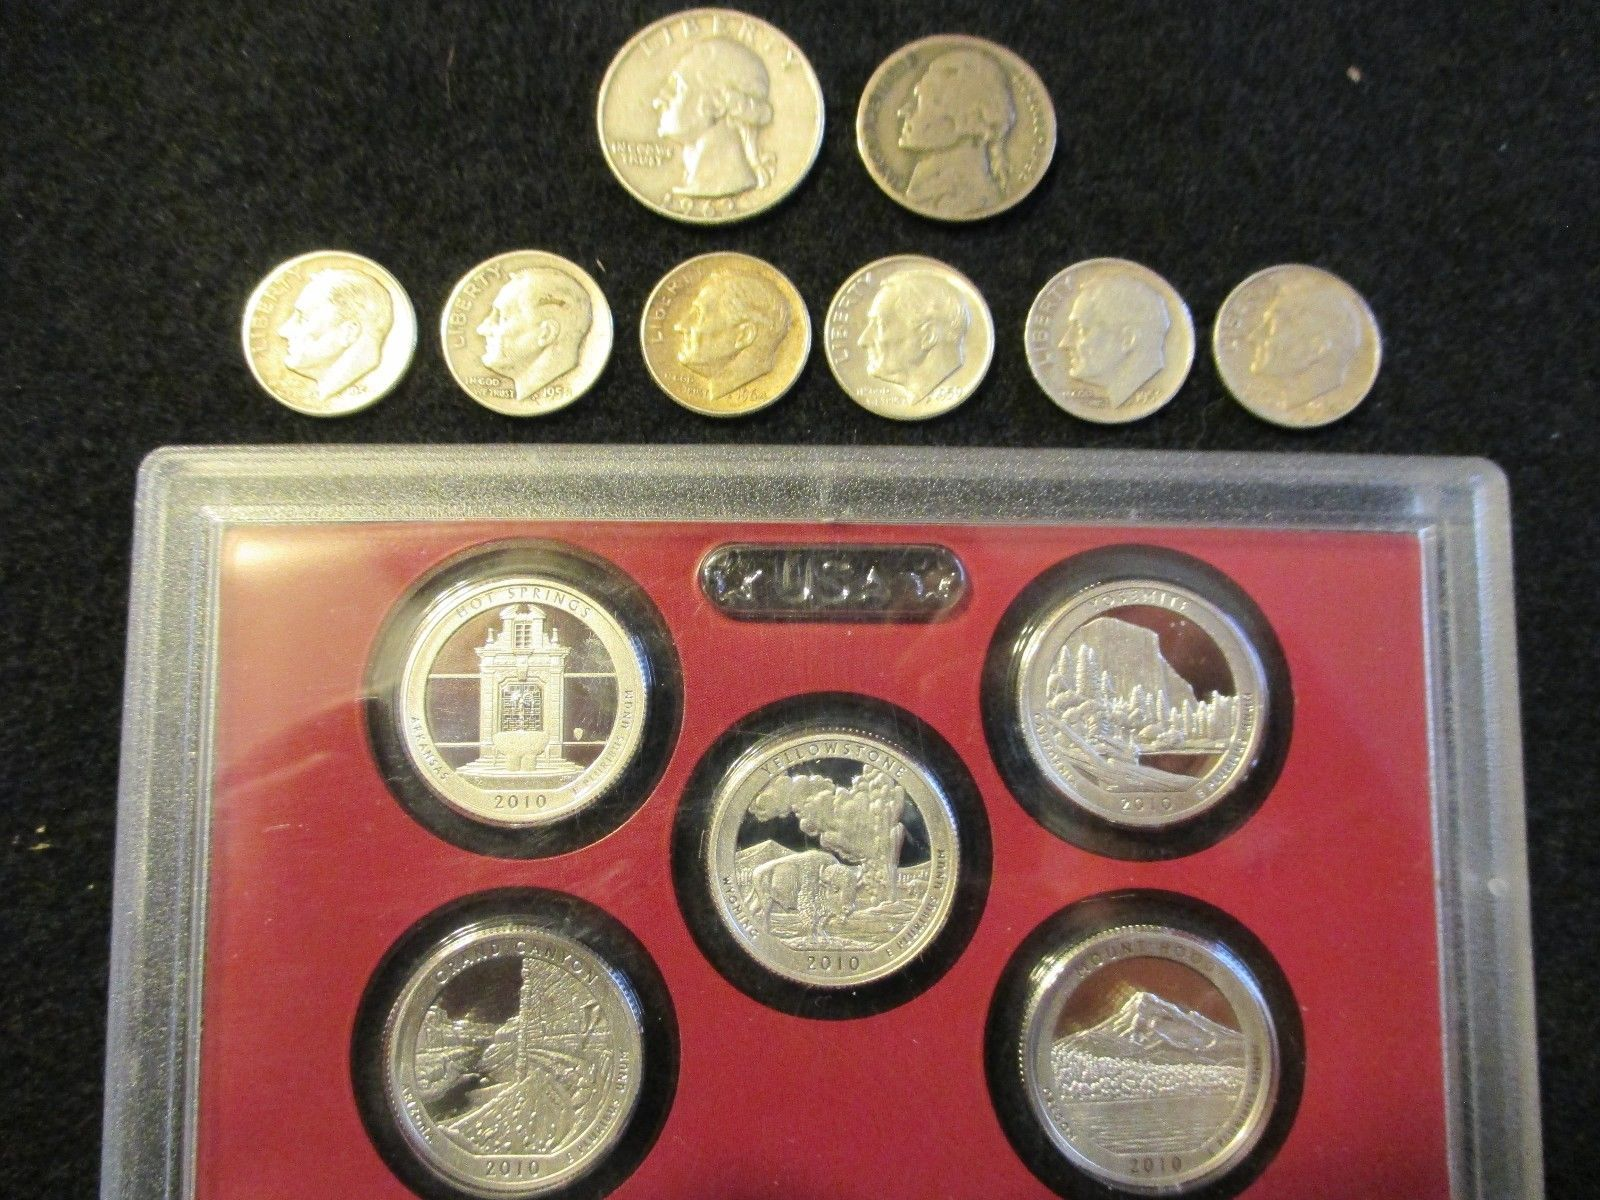 #New post #Nice Mixed Lot of U.S. Silver Coins  http://i.ebayimg.com/images/g/NBMAAOSw44BYkujE/s-l1600.jpg      Item specifics     Composition:   Silver       Nice Mixed Lot of U.S. Silver Coins  Price : 38.95  Ends on : Ended  View on eBay  Post ID is empty in Rating Form ID 1 https://www.shopnet.one/nice-mixed-lot-of-u-s-silver-coins-2/